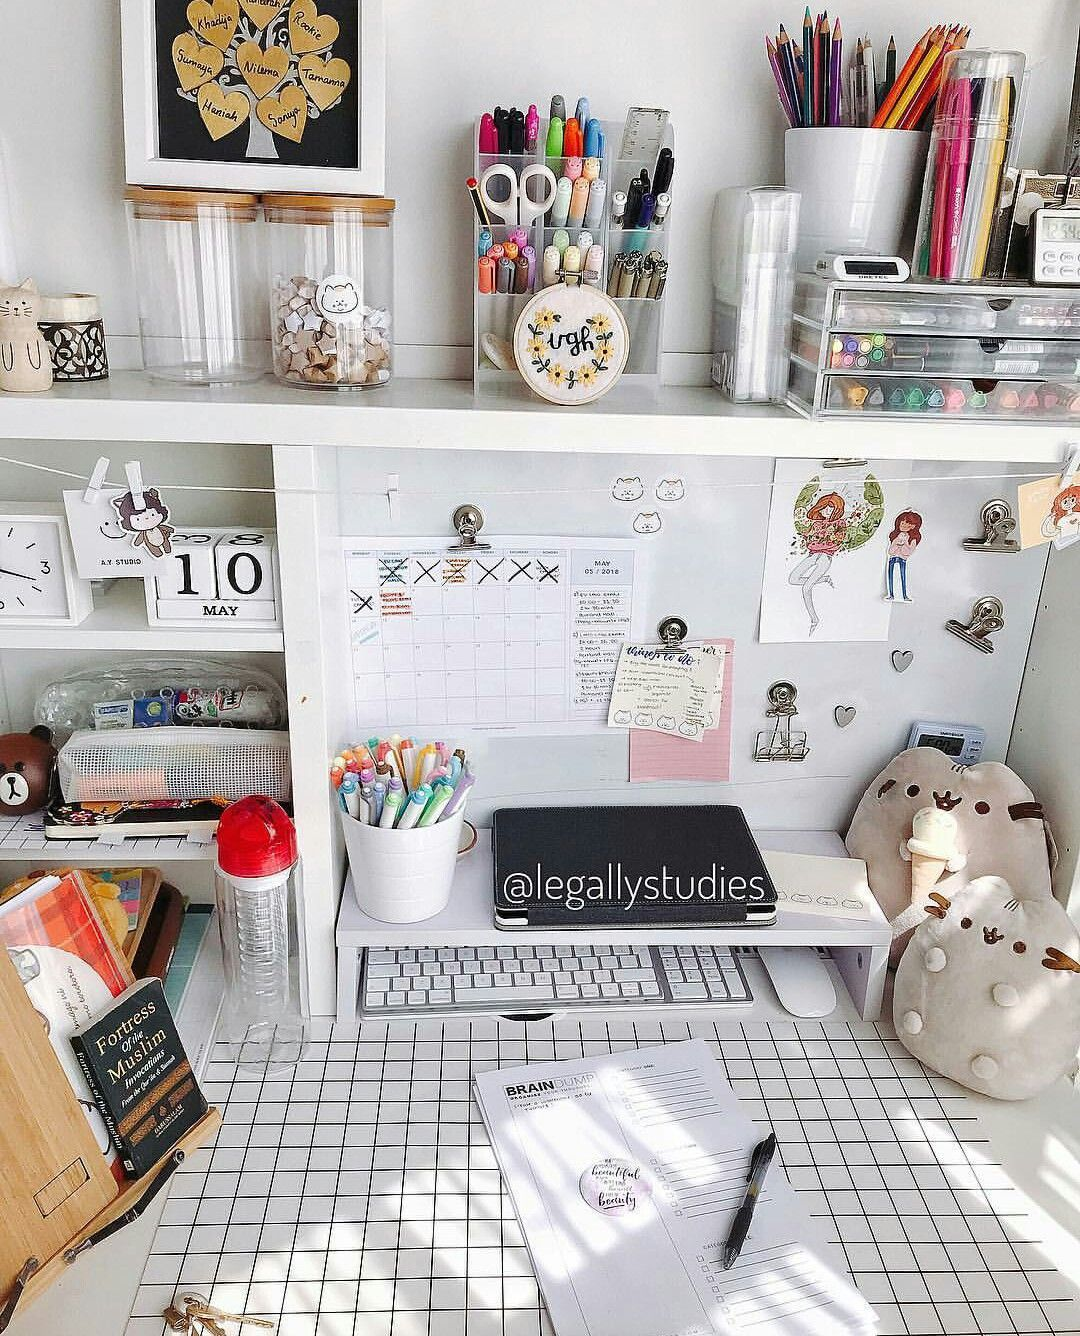 Do It Yourself Home Design: 20 Inspirational Home Office Decor Ideas For 2019